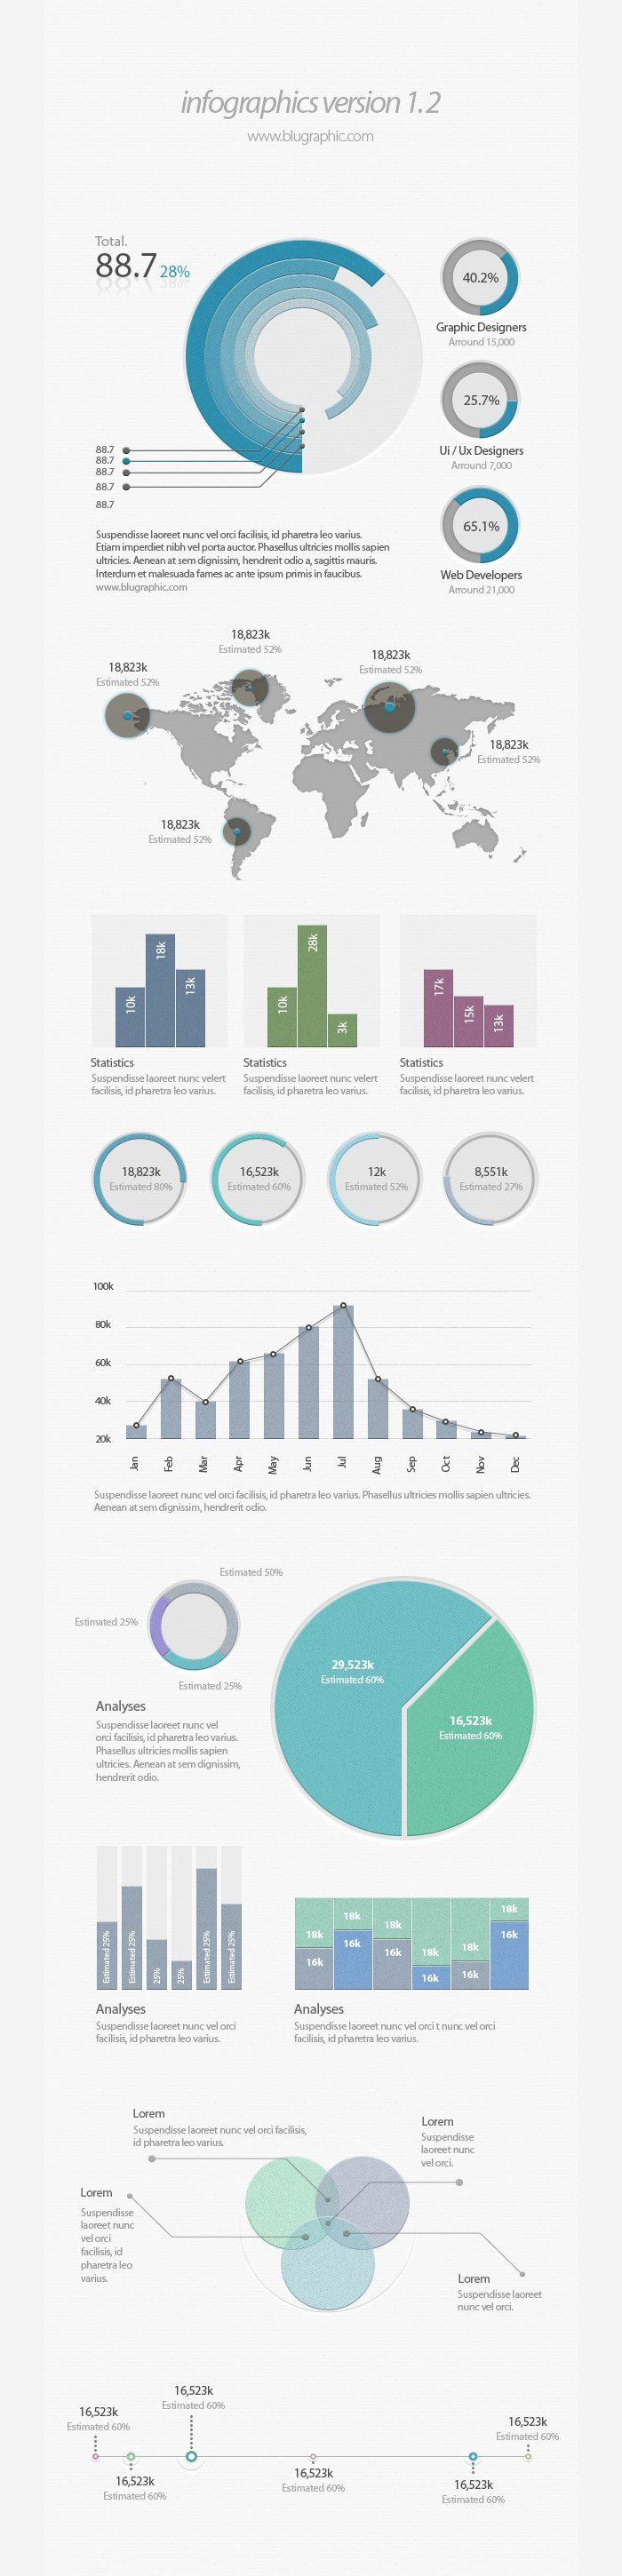 free-psd-infographic-ui-elements-ver-1-2